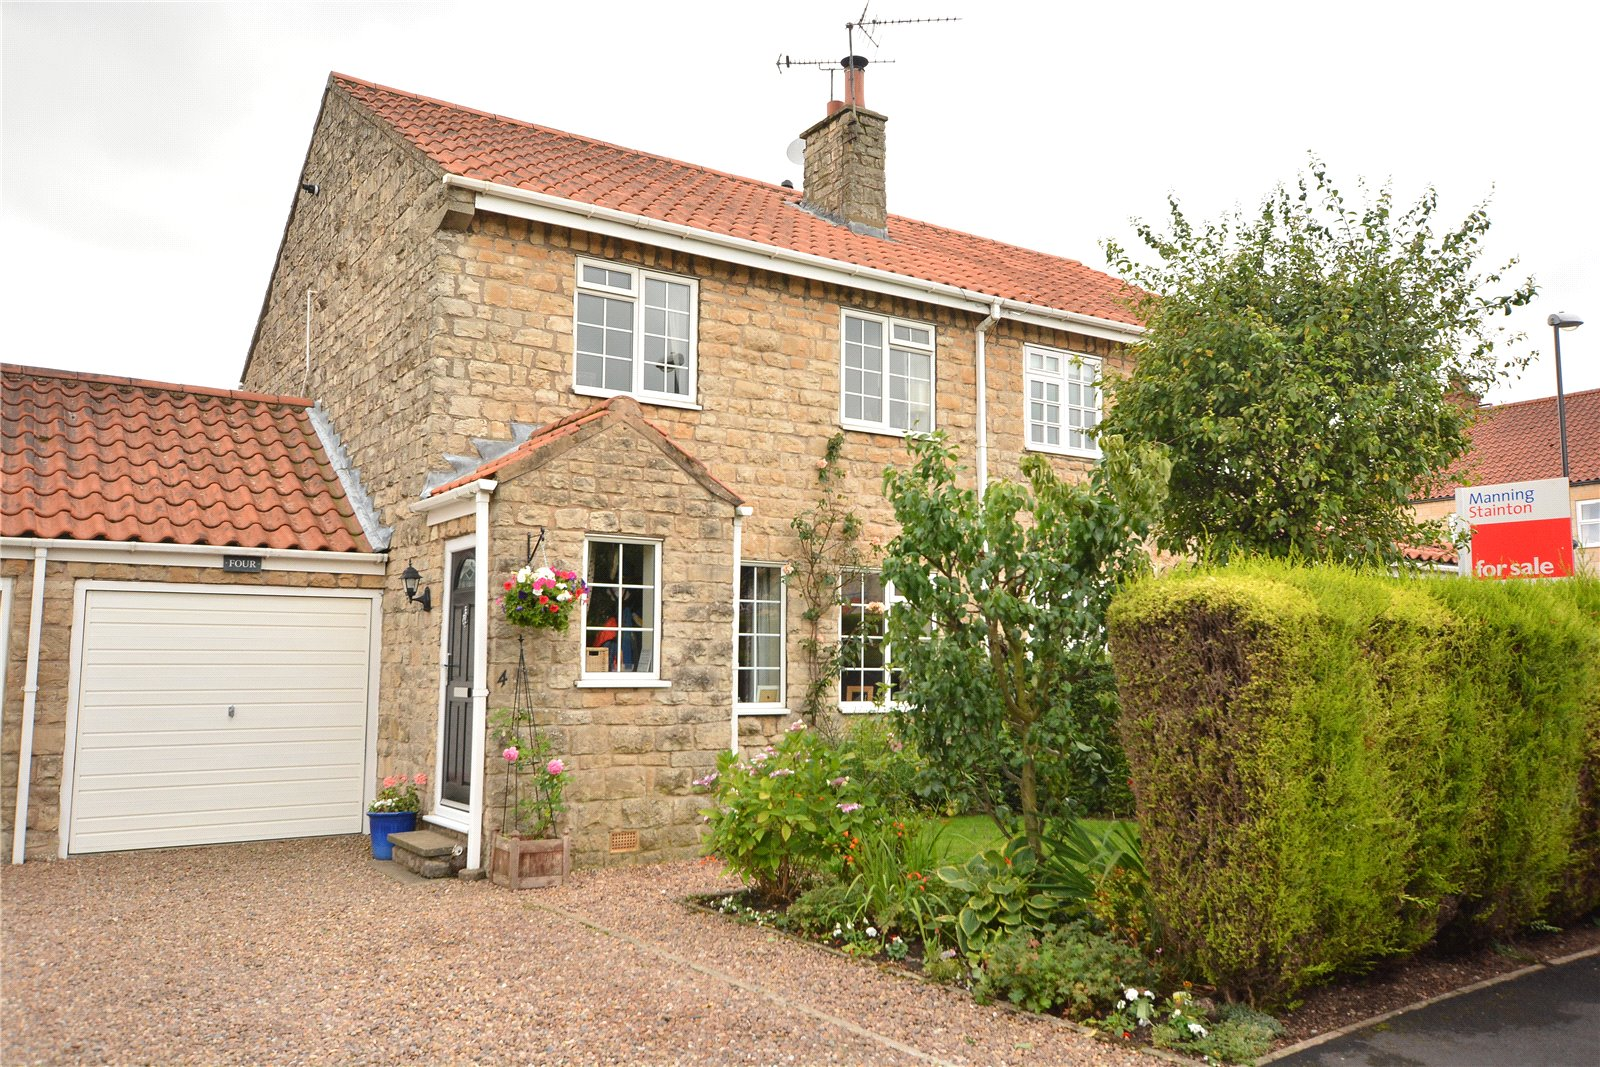 Property for sale in Wetherby, exterior semi detached stone house